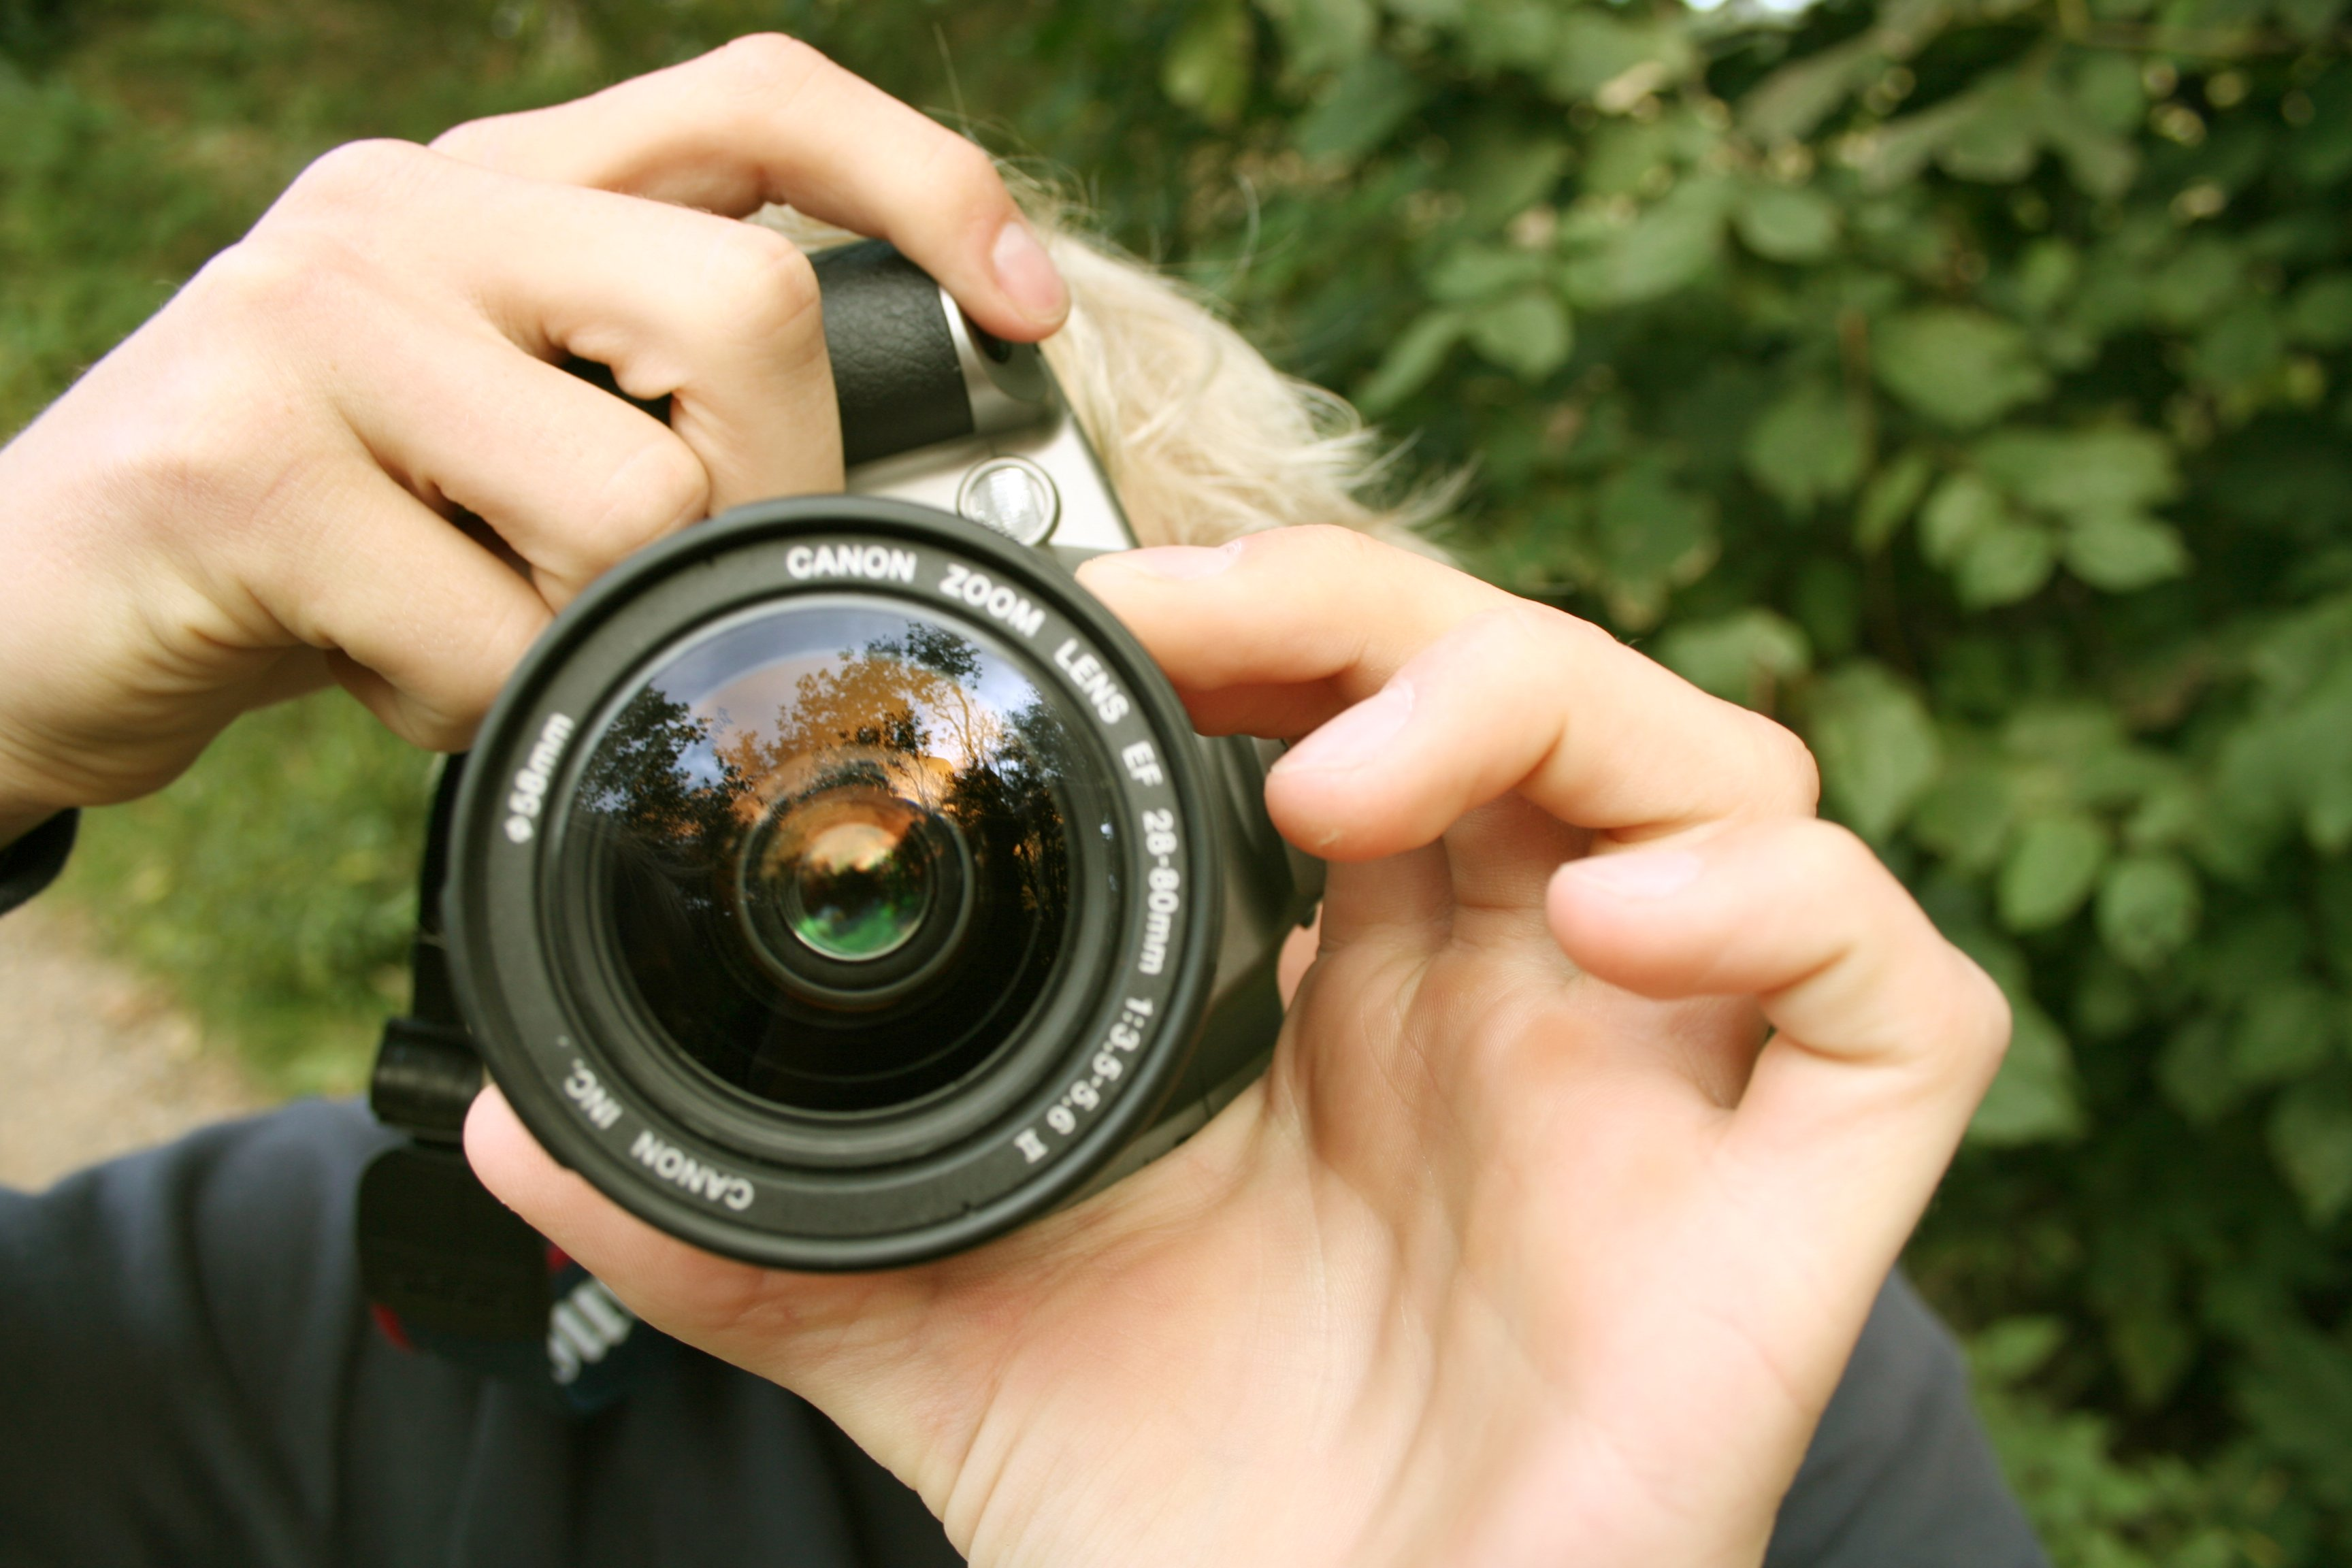 Add royalty-free stock photos to your blog